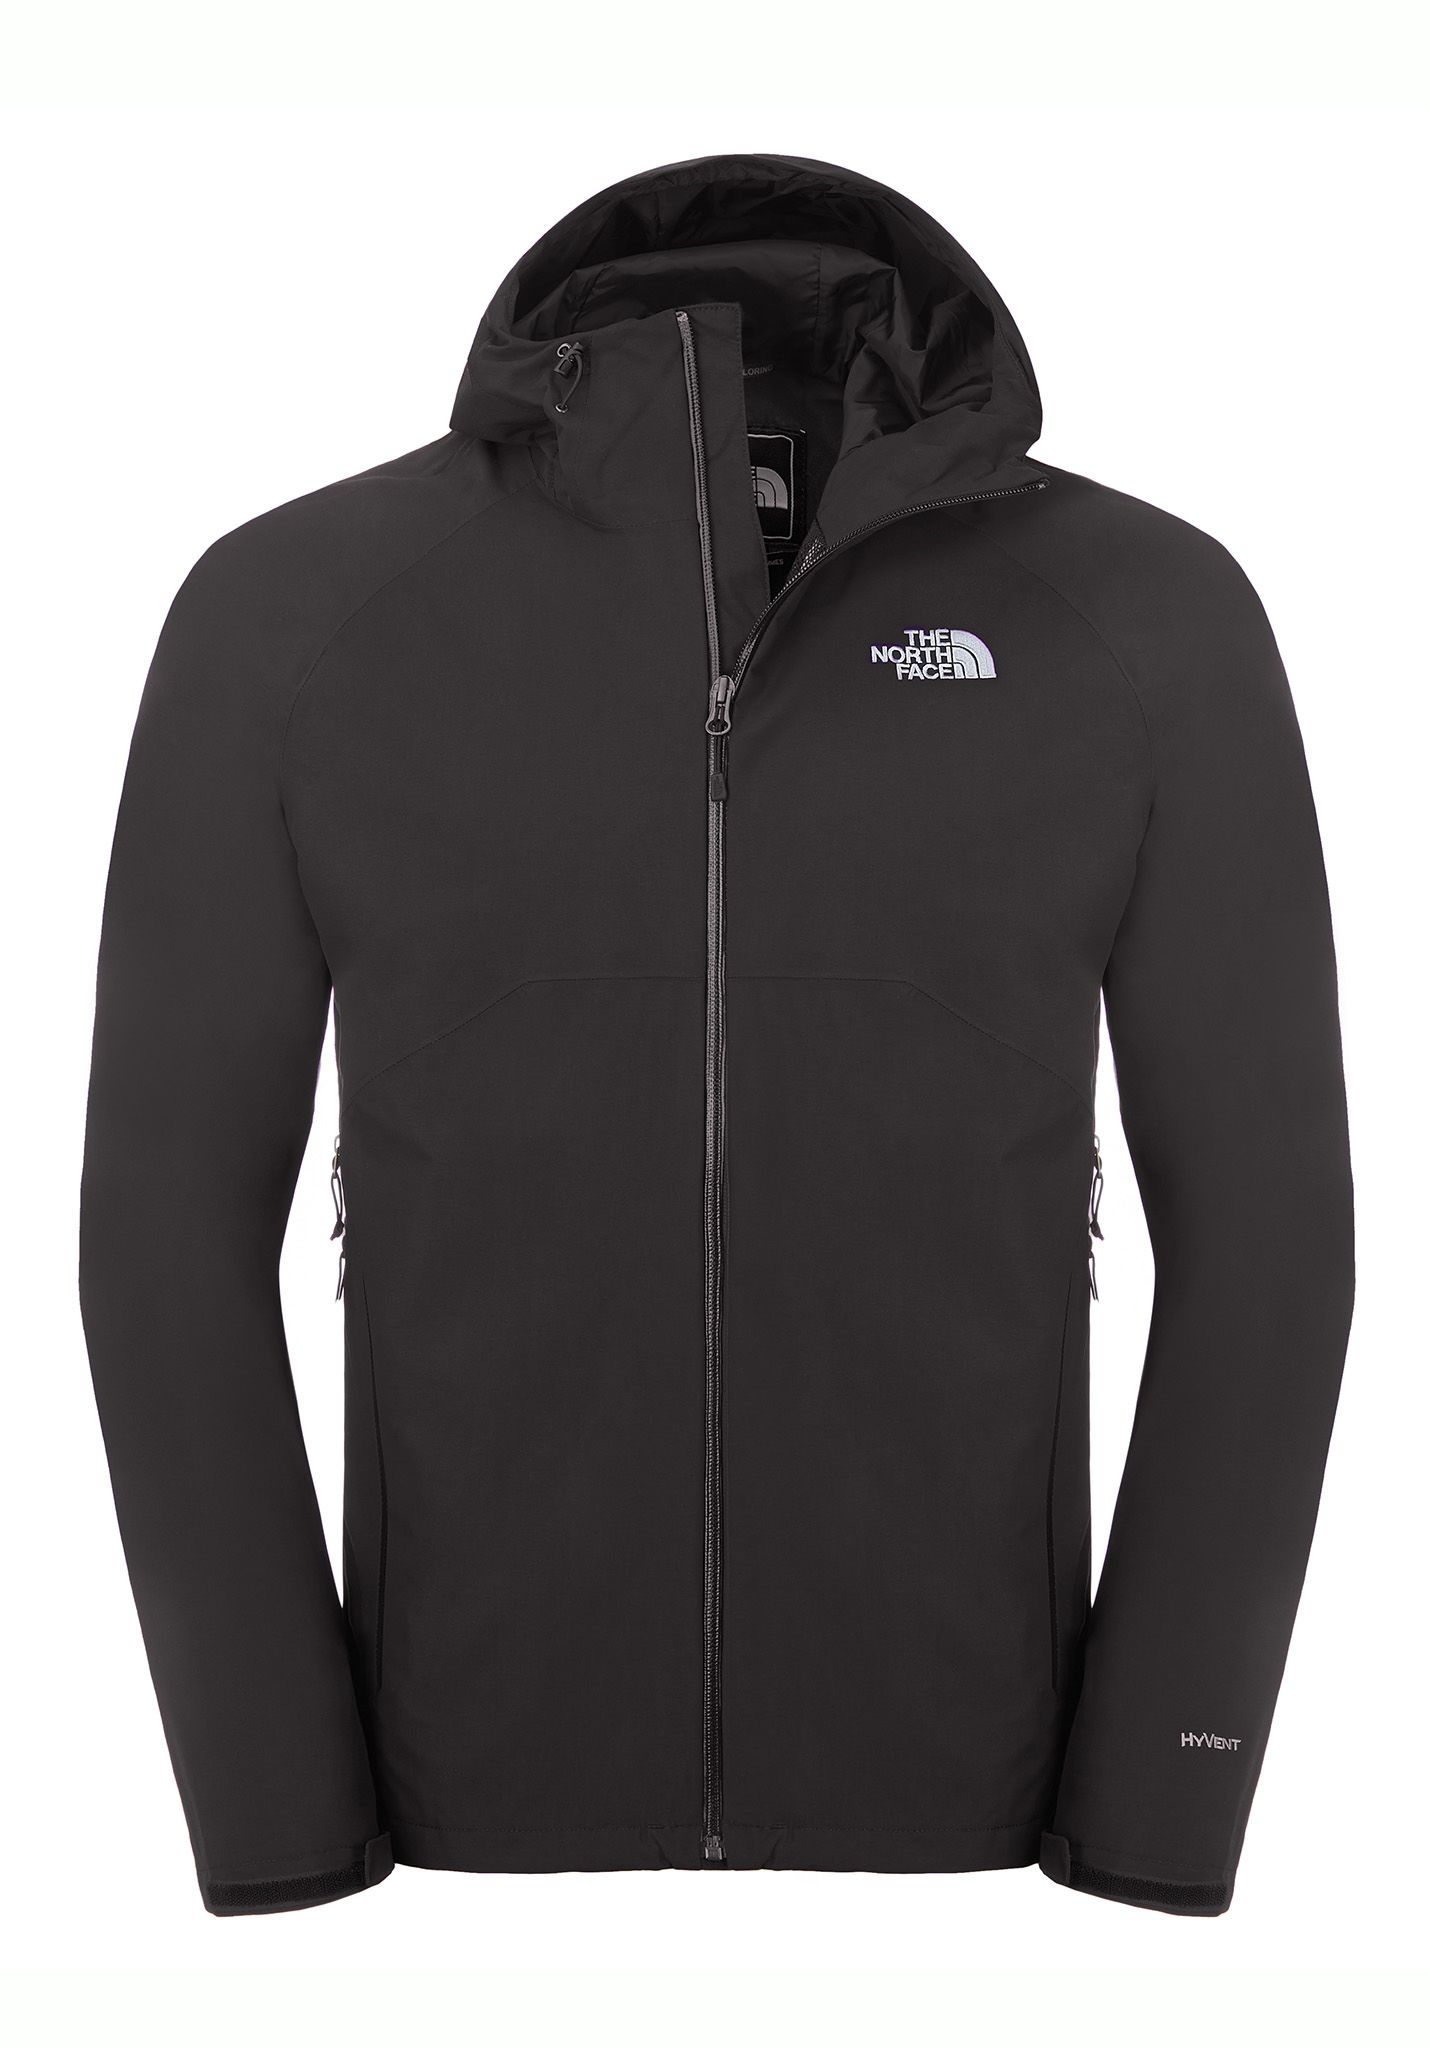 17719132766 THE NORTH FACE Stratos - Jacket for Men - Black - Planet Sports